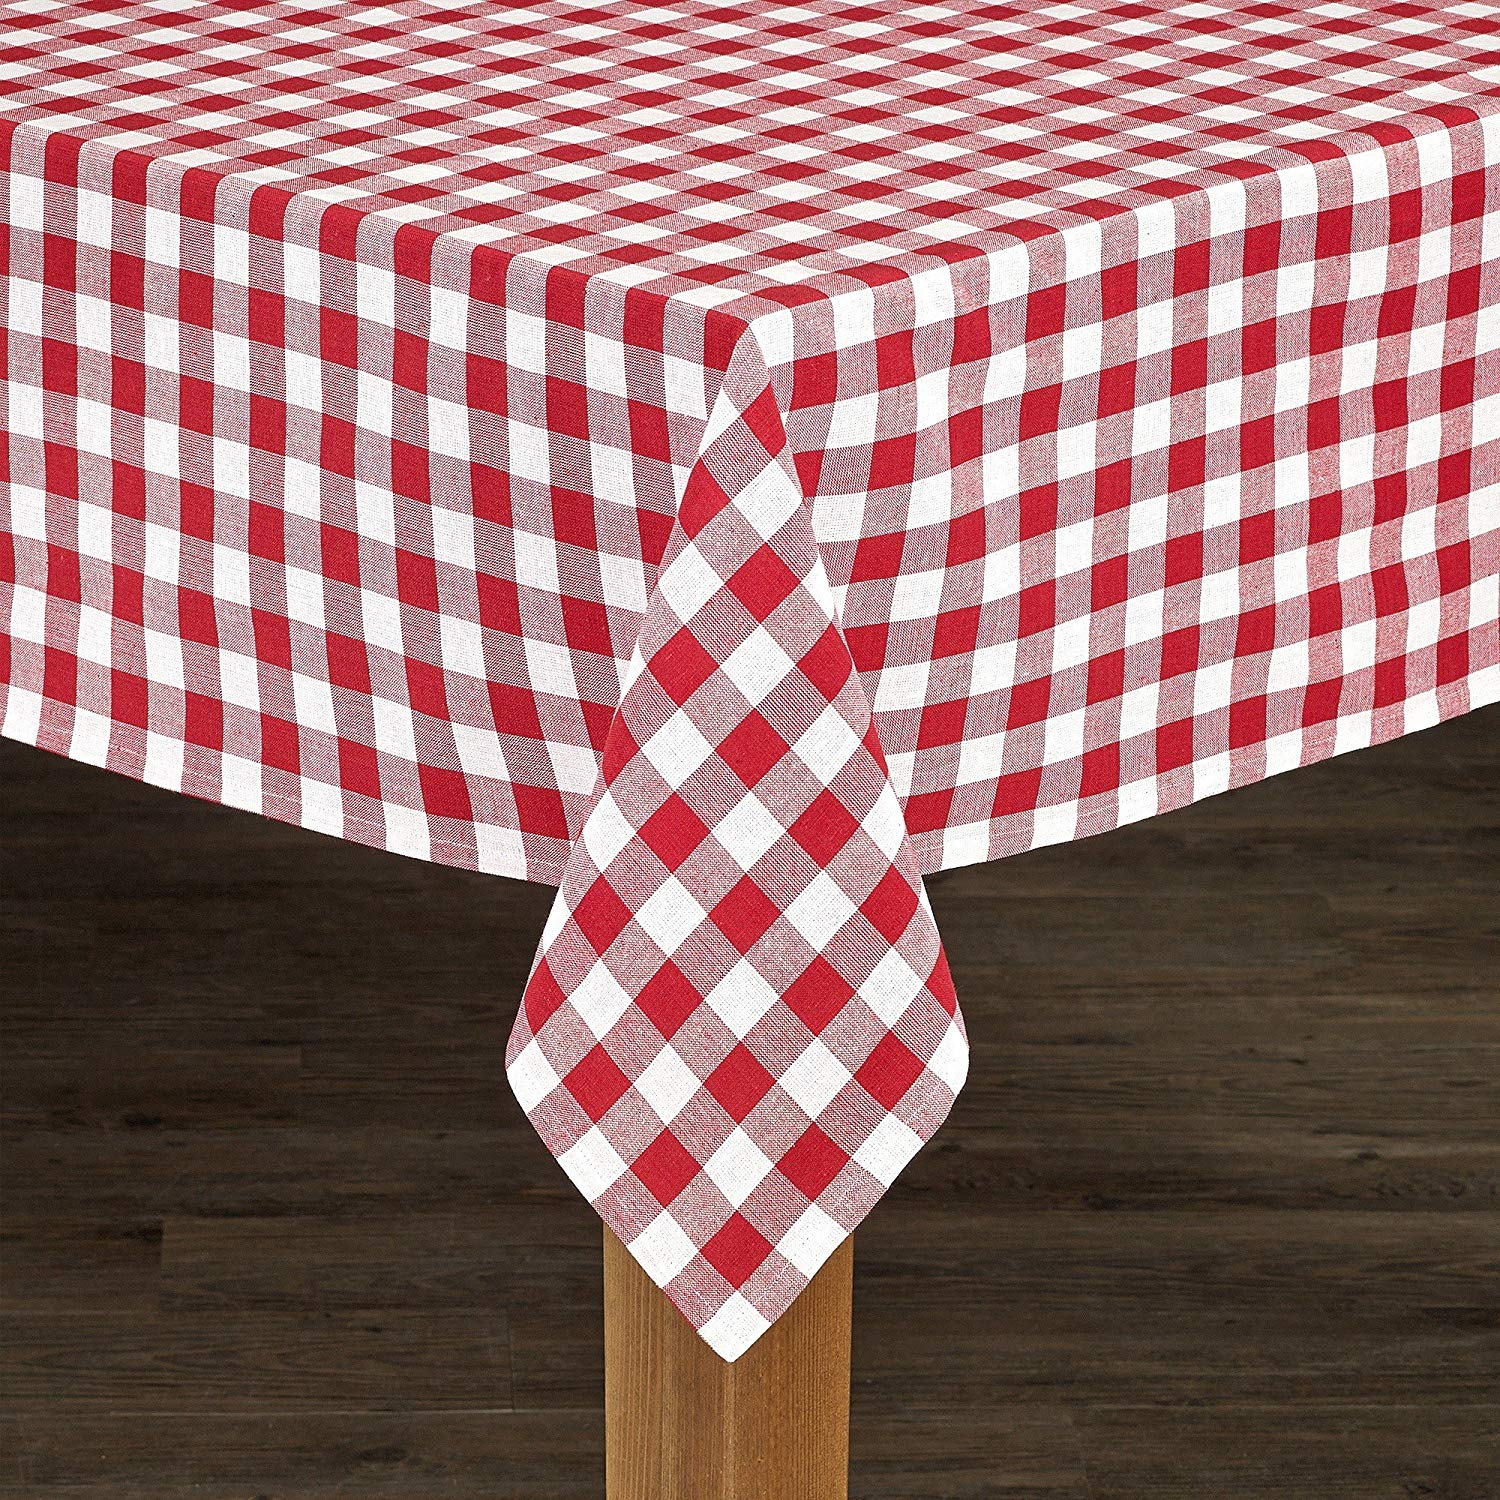 "CA 52"" X 70""inch Red White Multi Colored Checkered Patterned Table Cloth, 1 Piece Plaid Tartan Glen Check Squared Box Geometric Design Rectangle Dining Table Linen Classic Bold, Cotton"